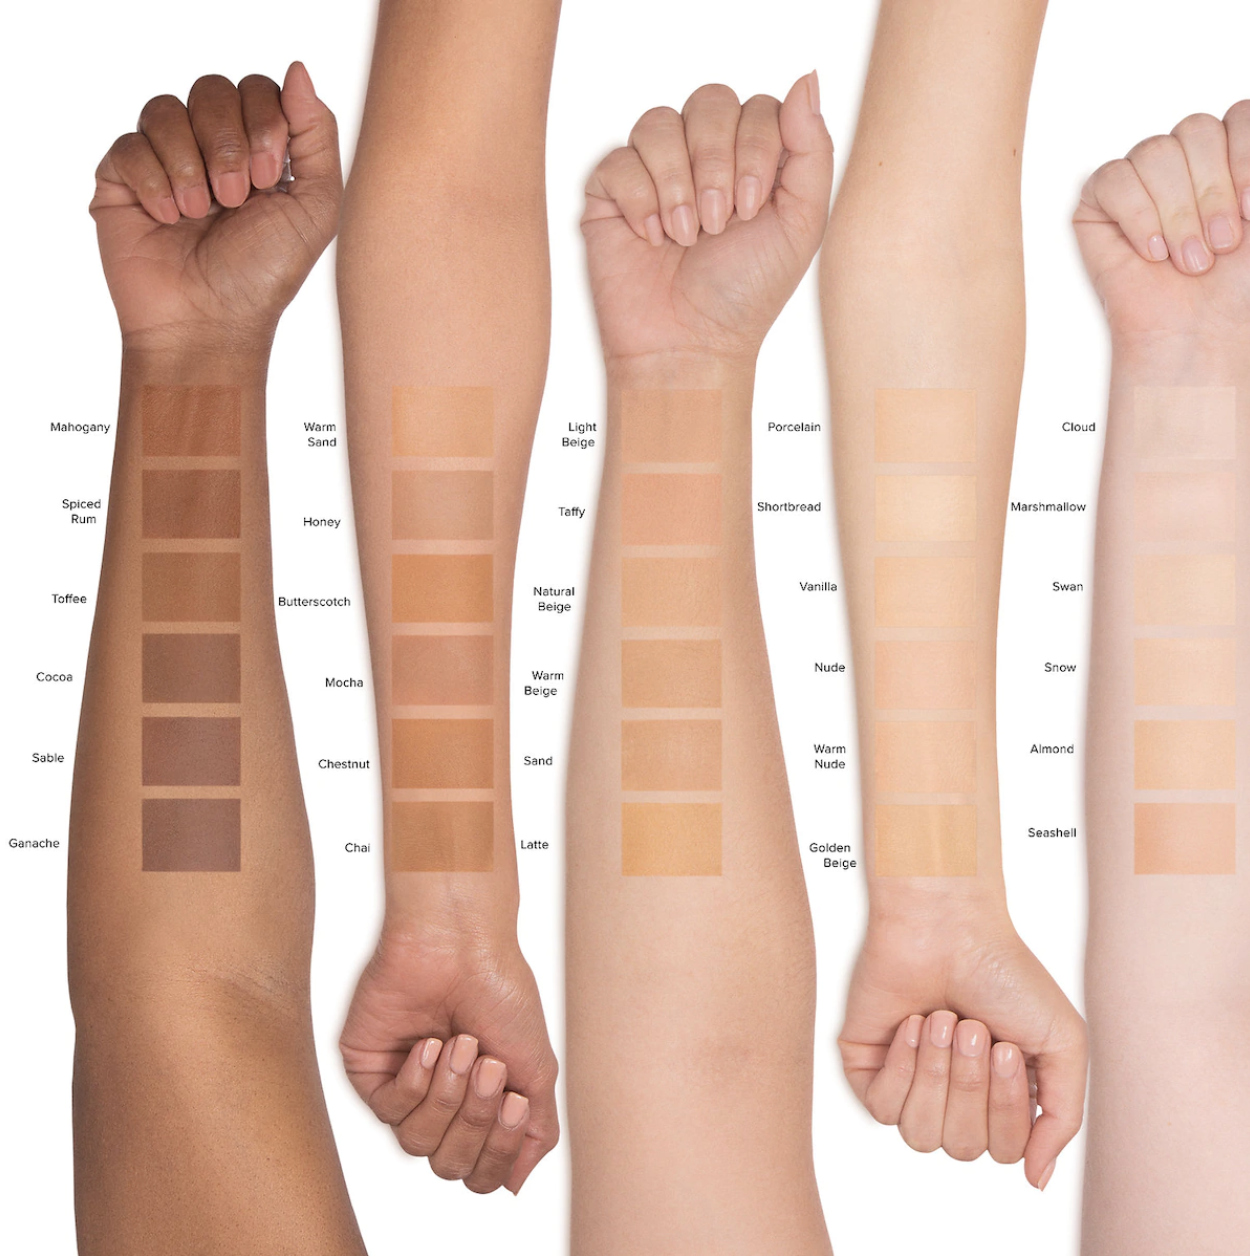 The range of swatches across models' arms in fair, light, medium, tan, and deep skin tones